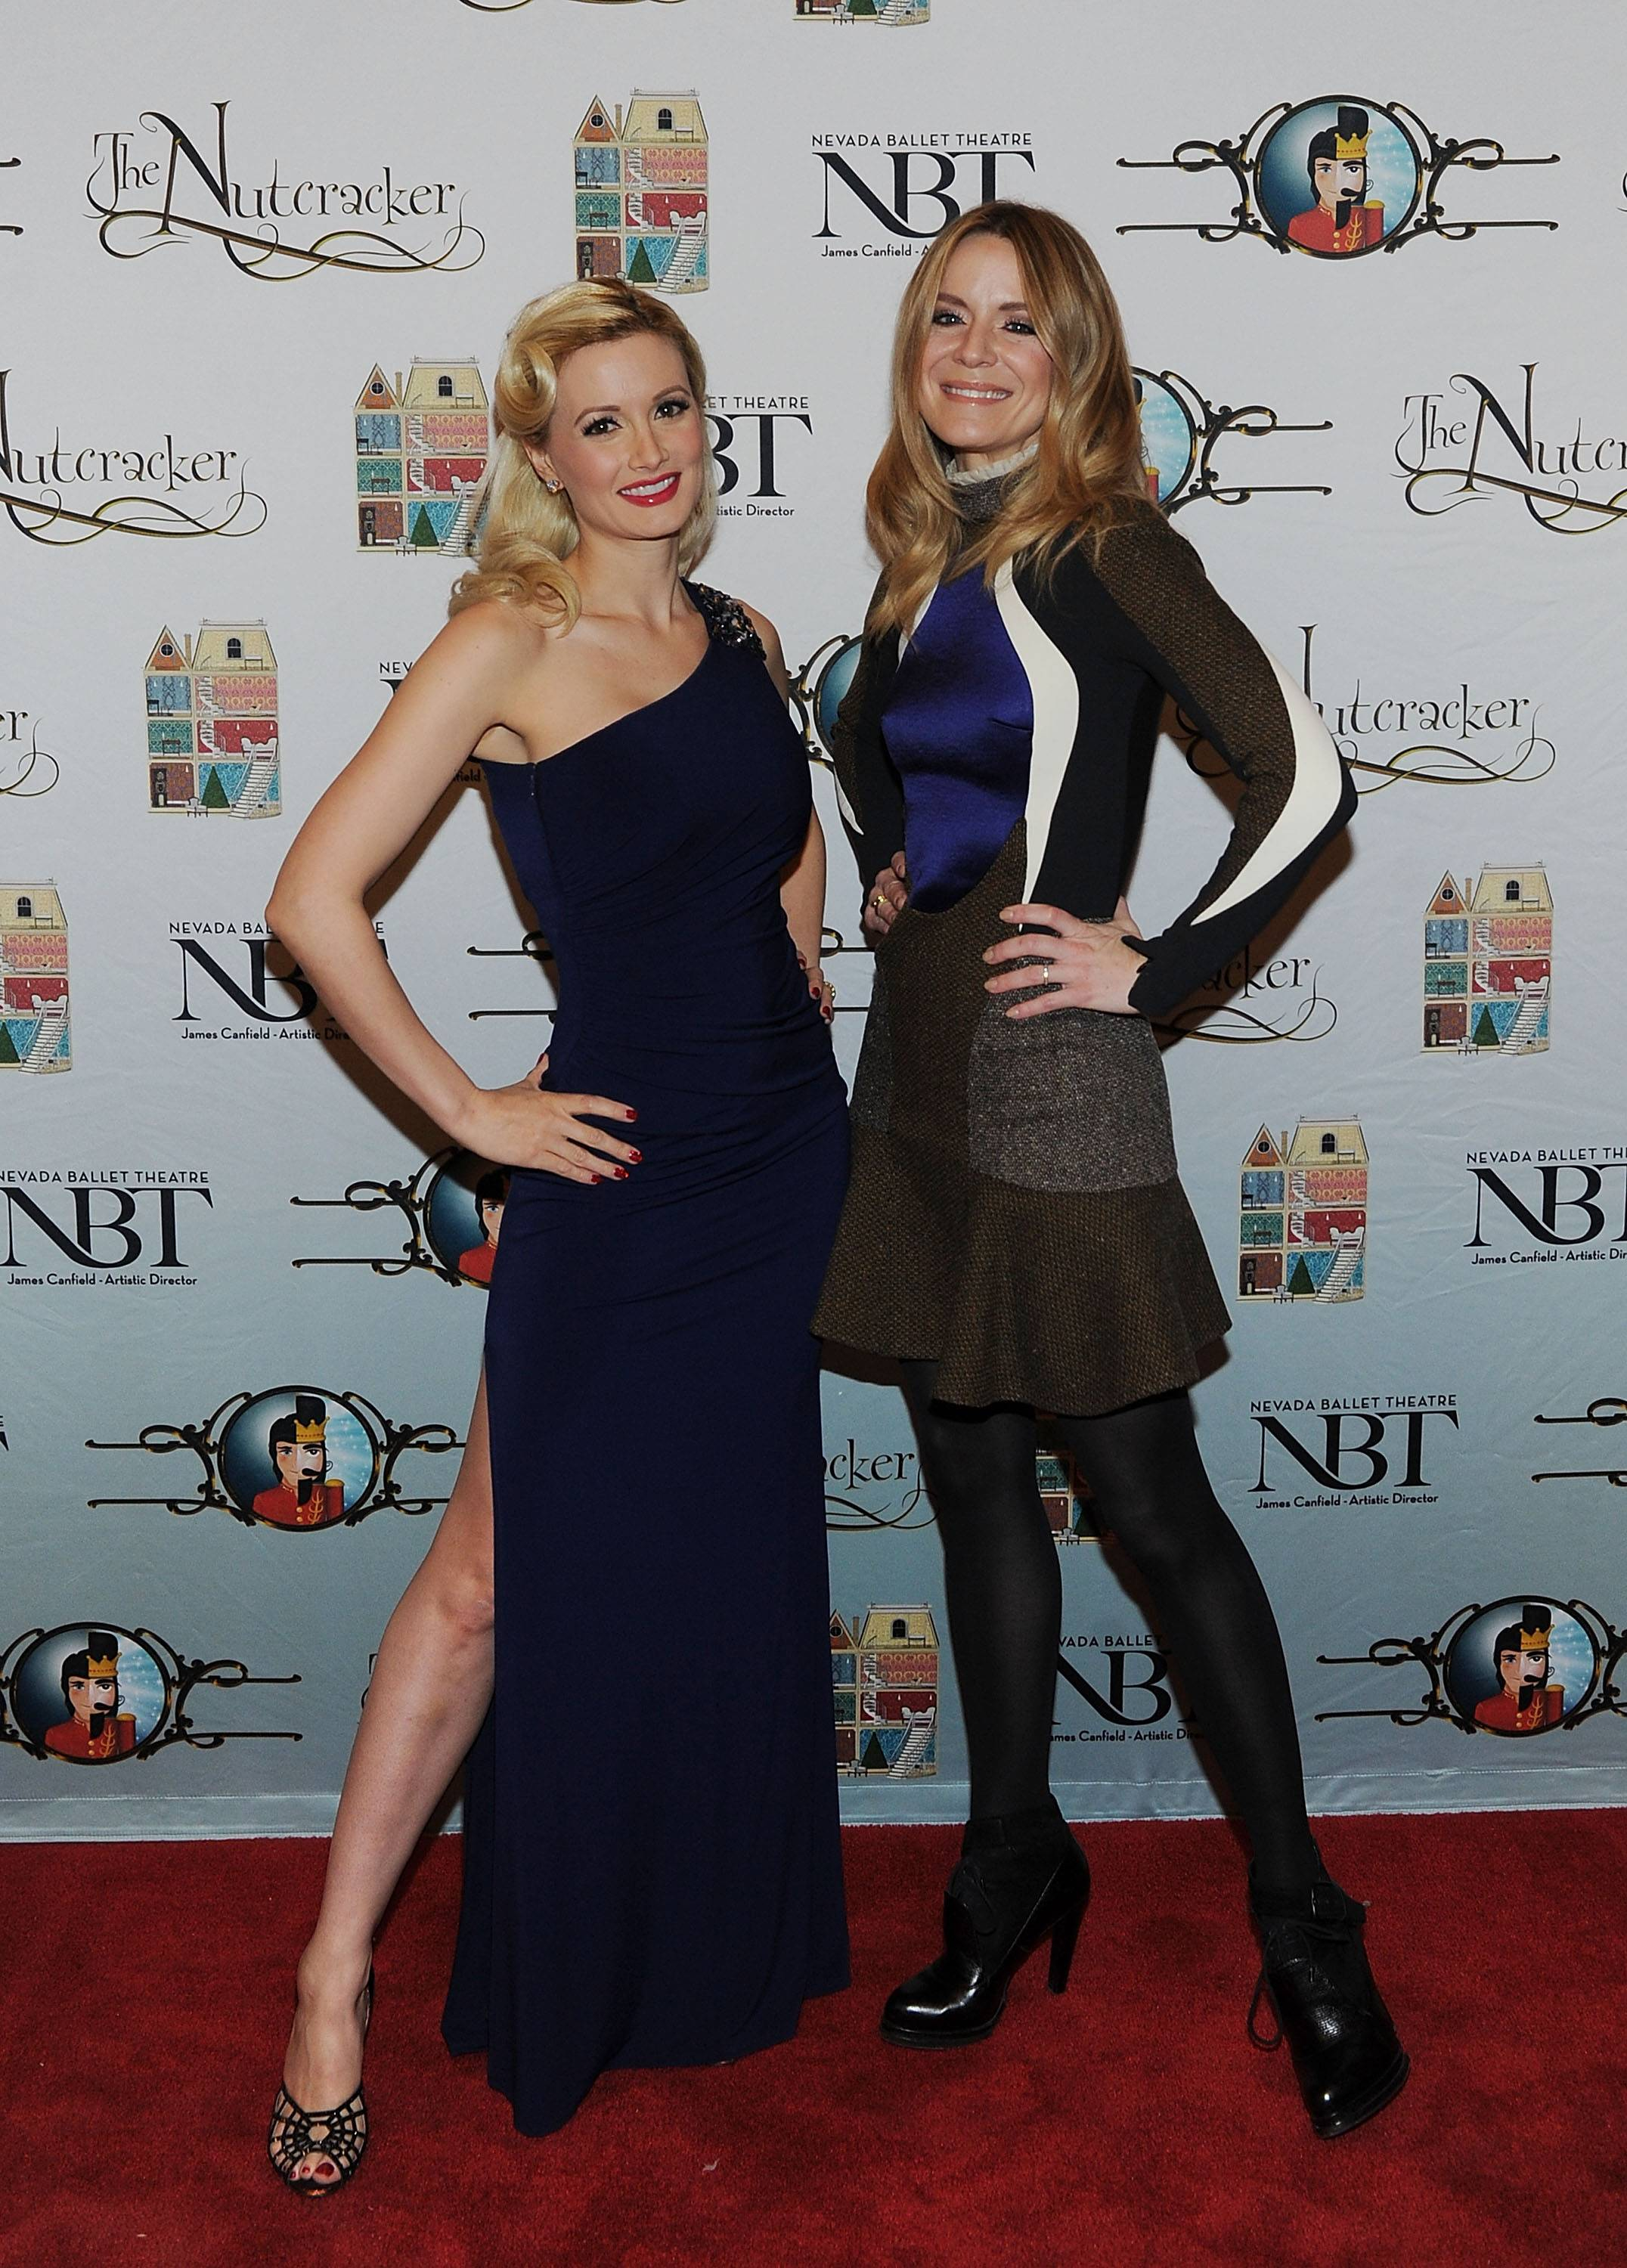 Opening Night Of Nevada Ballet Theatre's